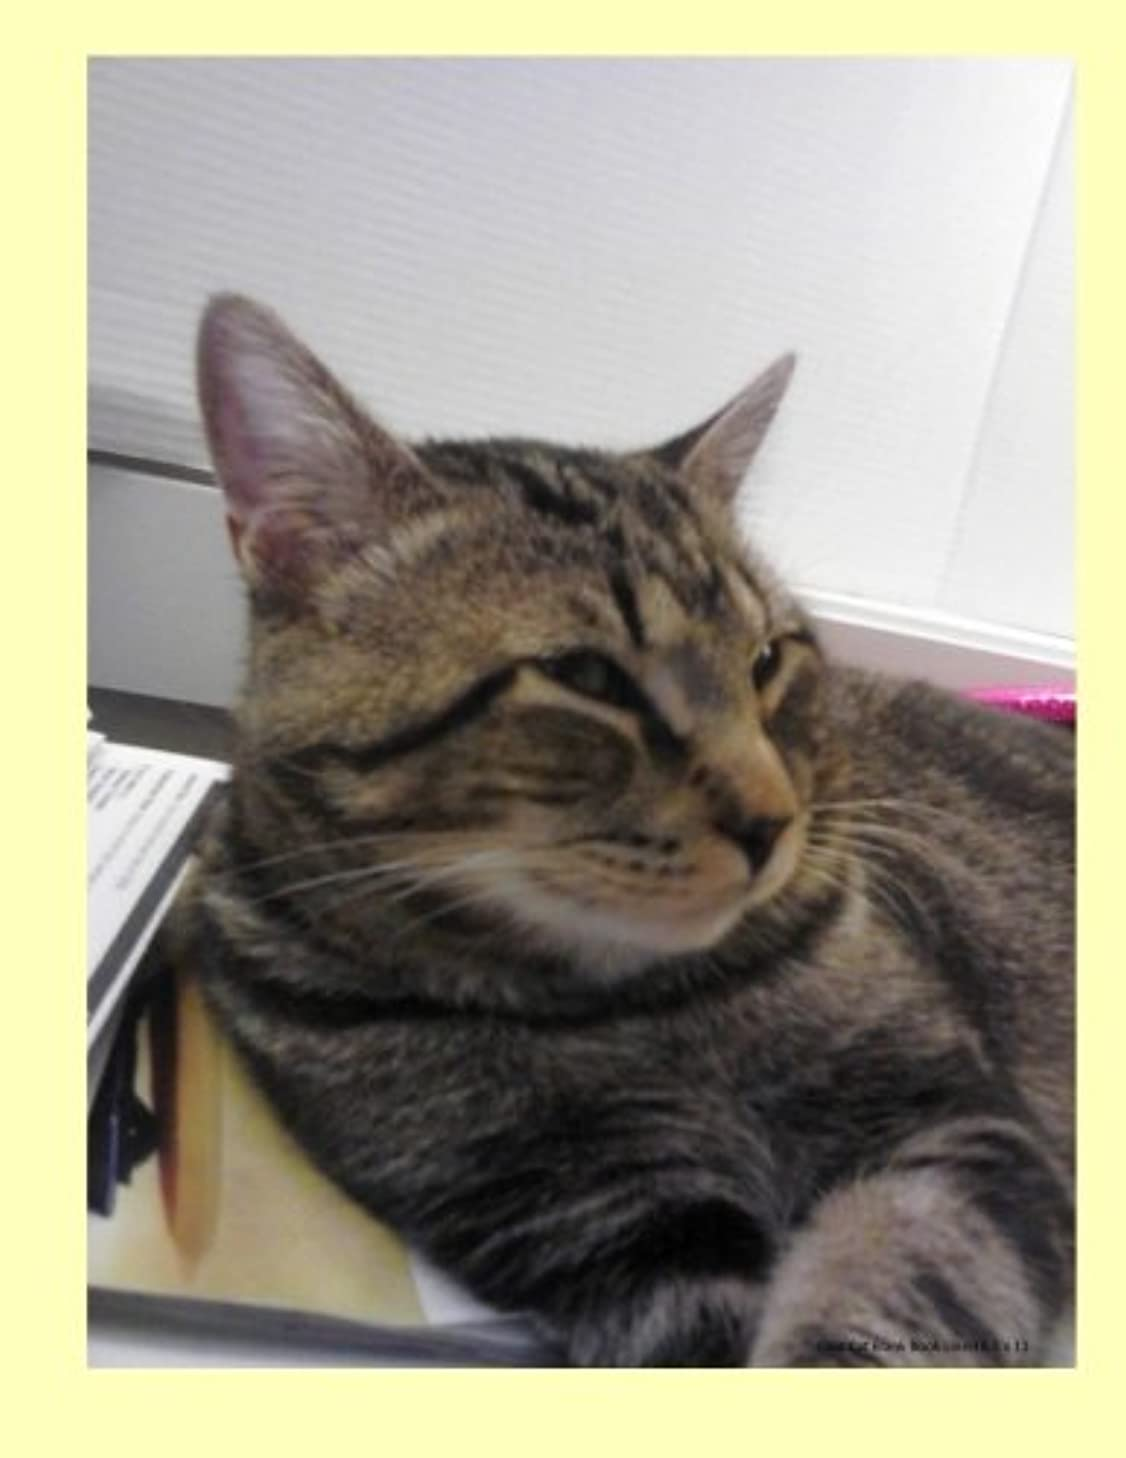 Cool Cat Blank Book Lined 8.5 x 11: 8.5 by 11 inch lined blank book suitable as a journal, notebook, or diary with a cover photo of a cool tabby cat ... feline leukemia. (Cats of Ralphie's Retreat)